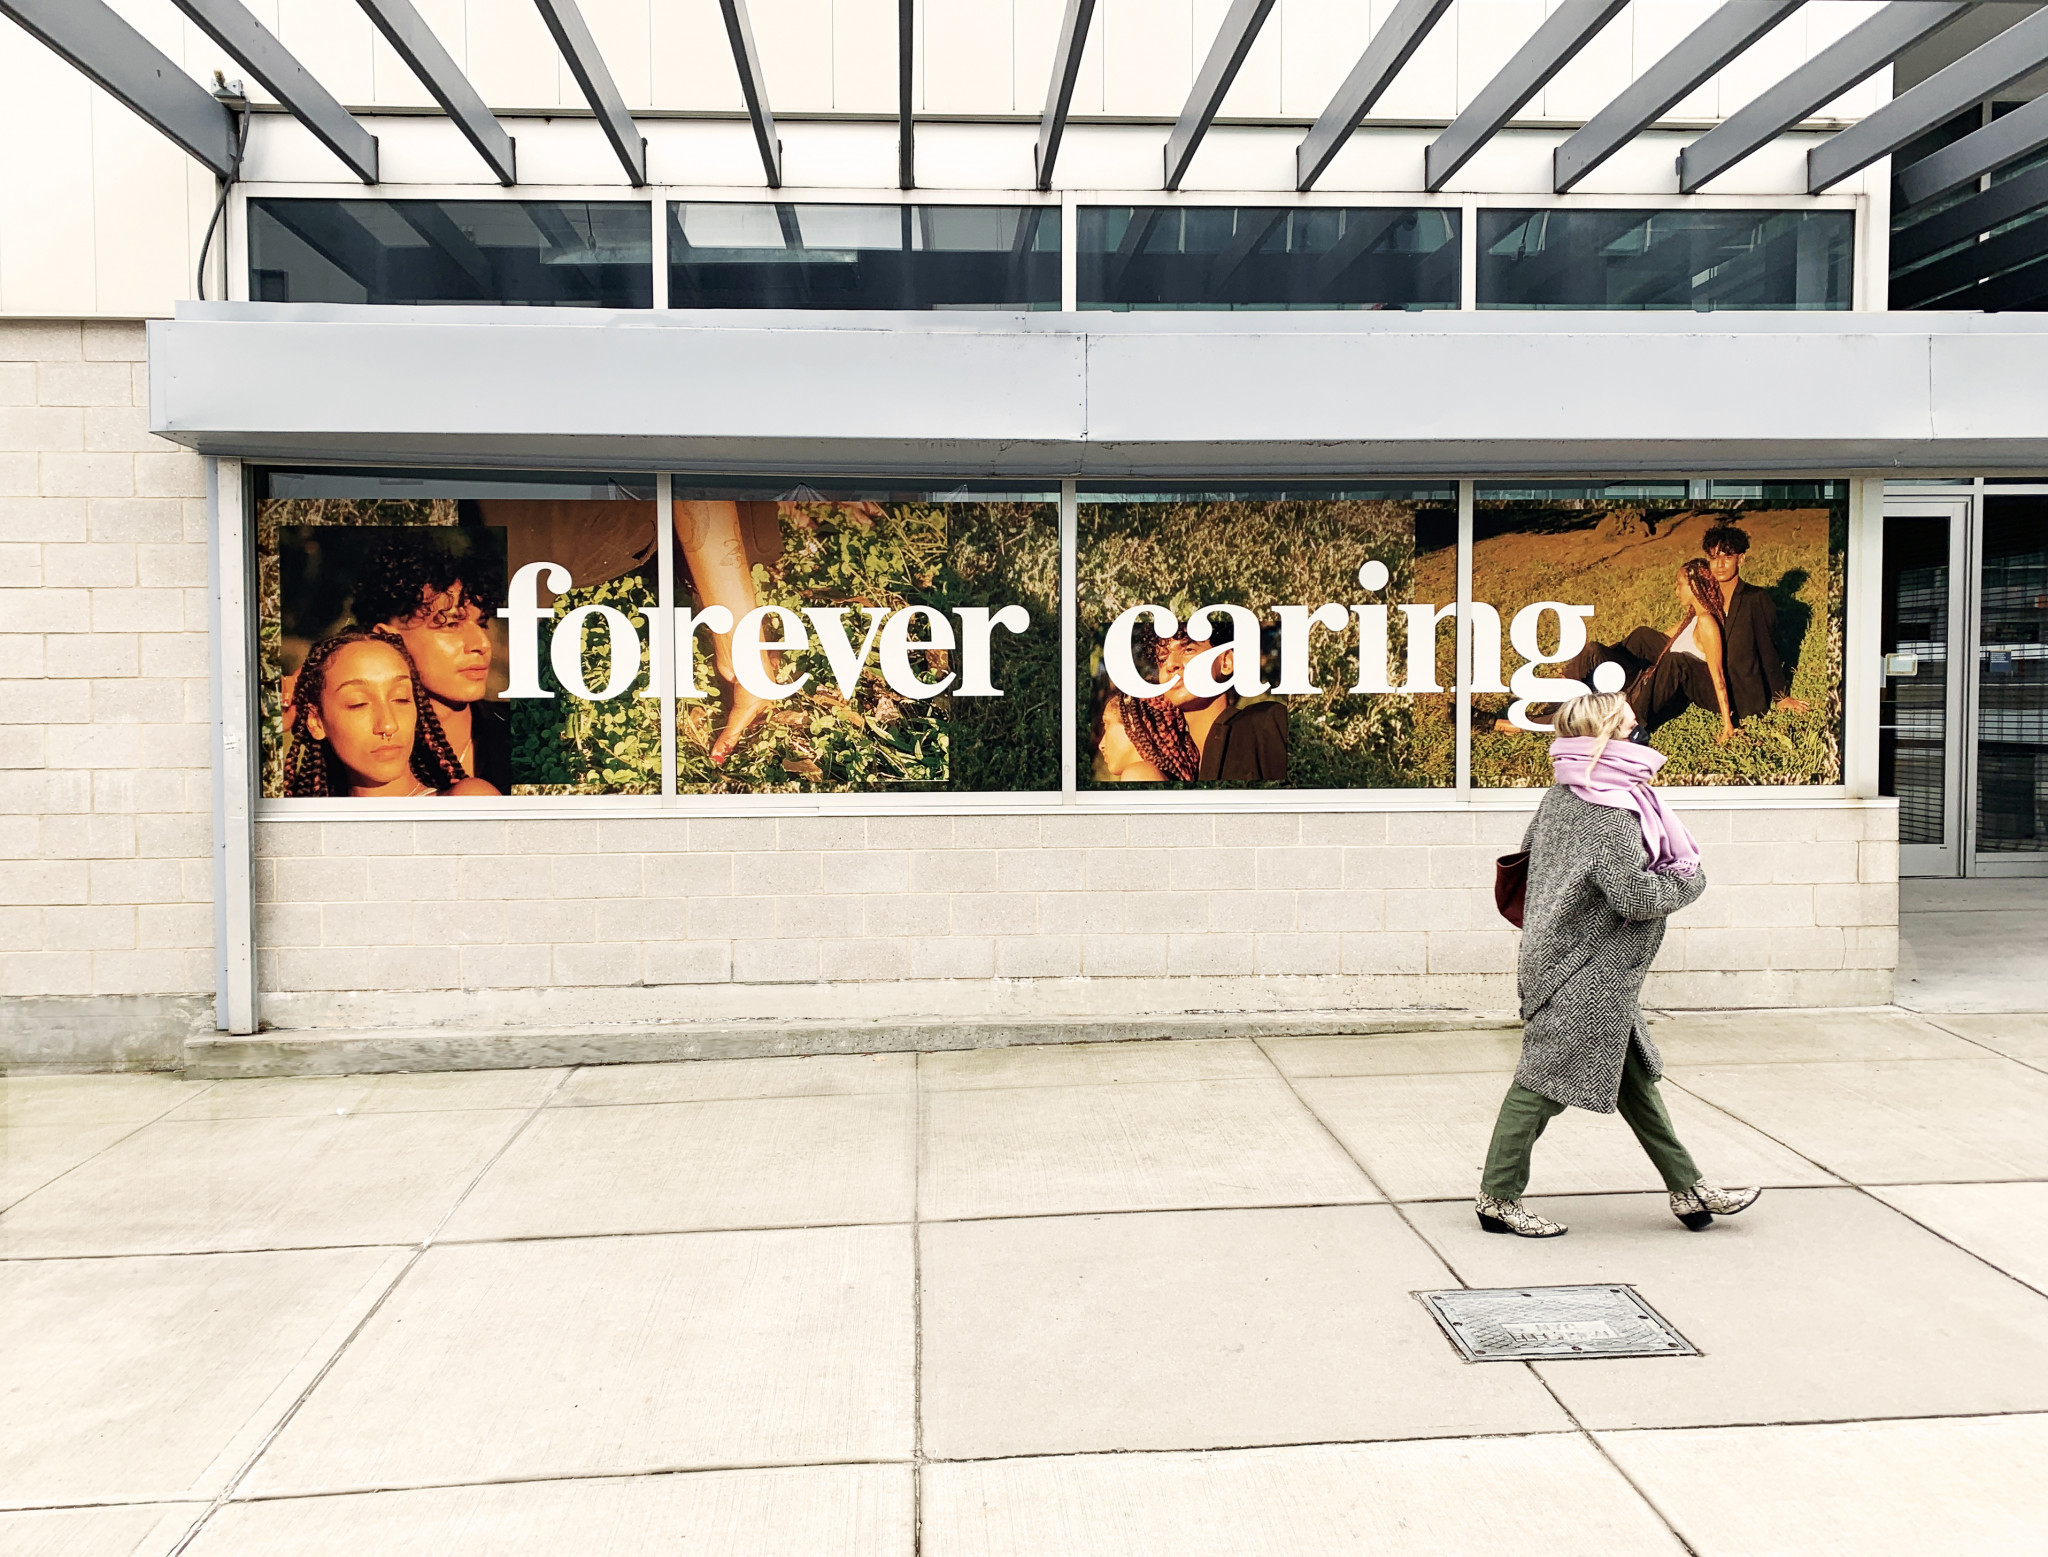 A person walks on the sidewalk in front of windows displaying images of a couple and the words forever caring.